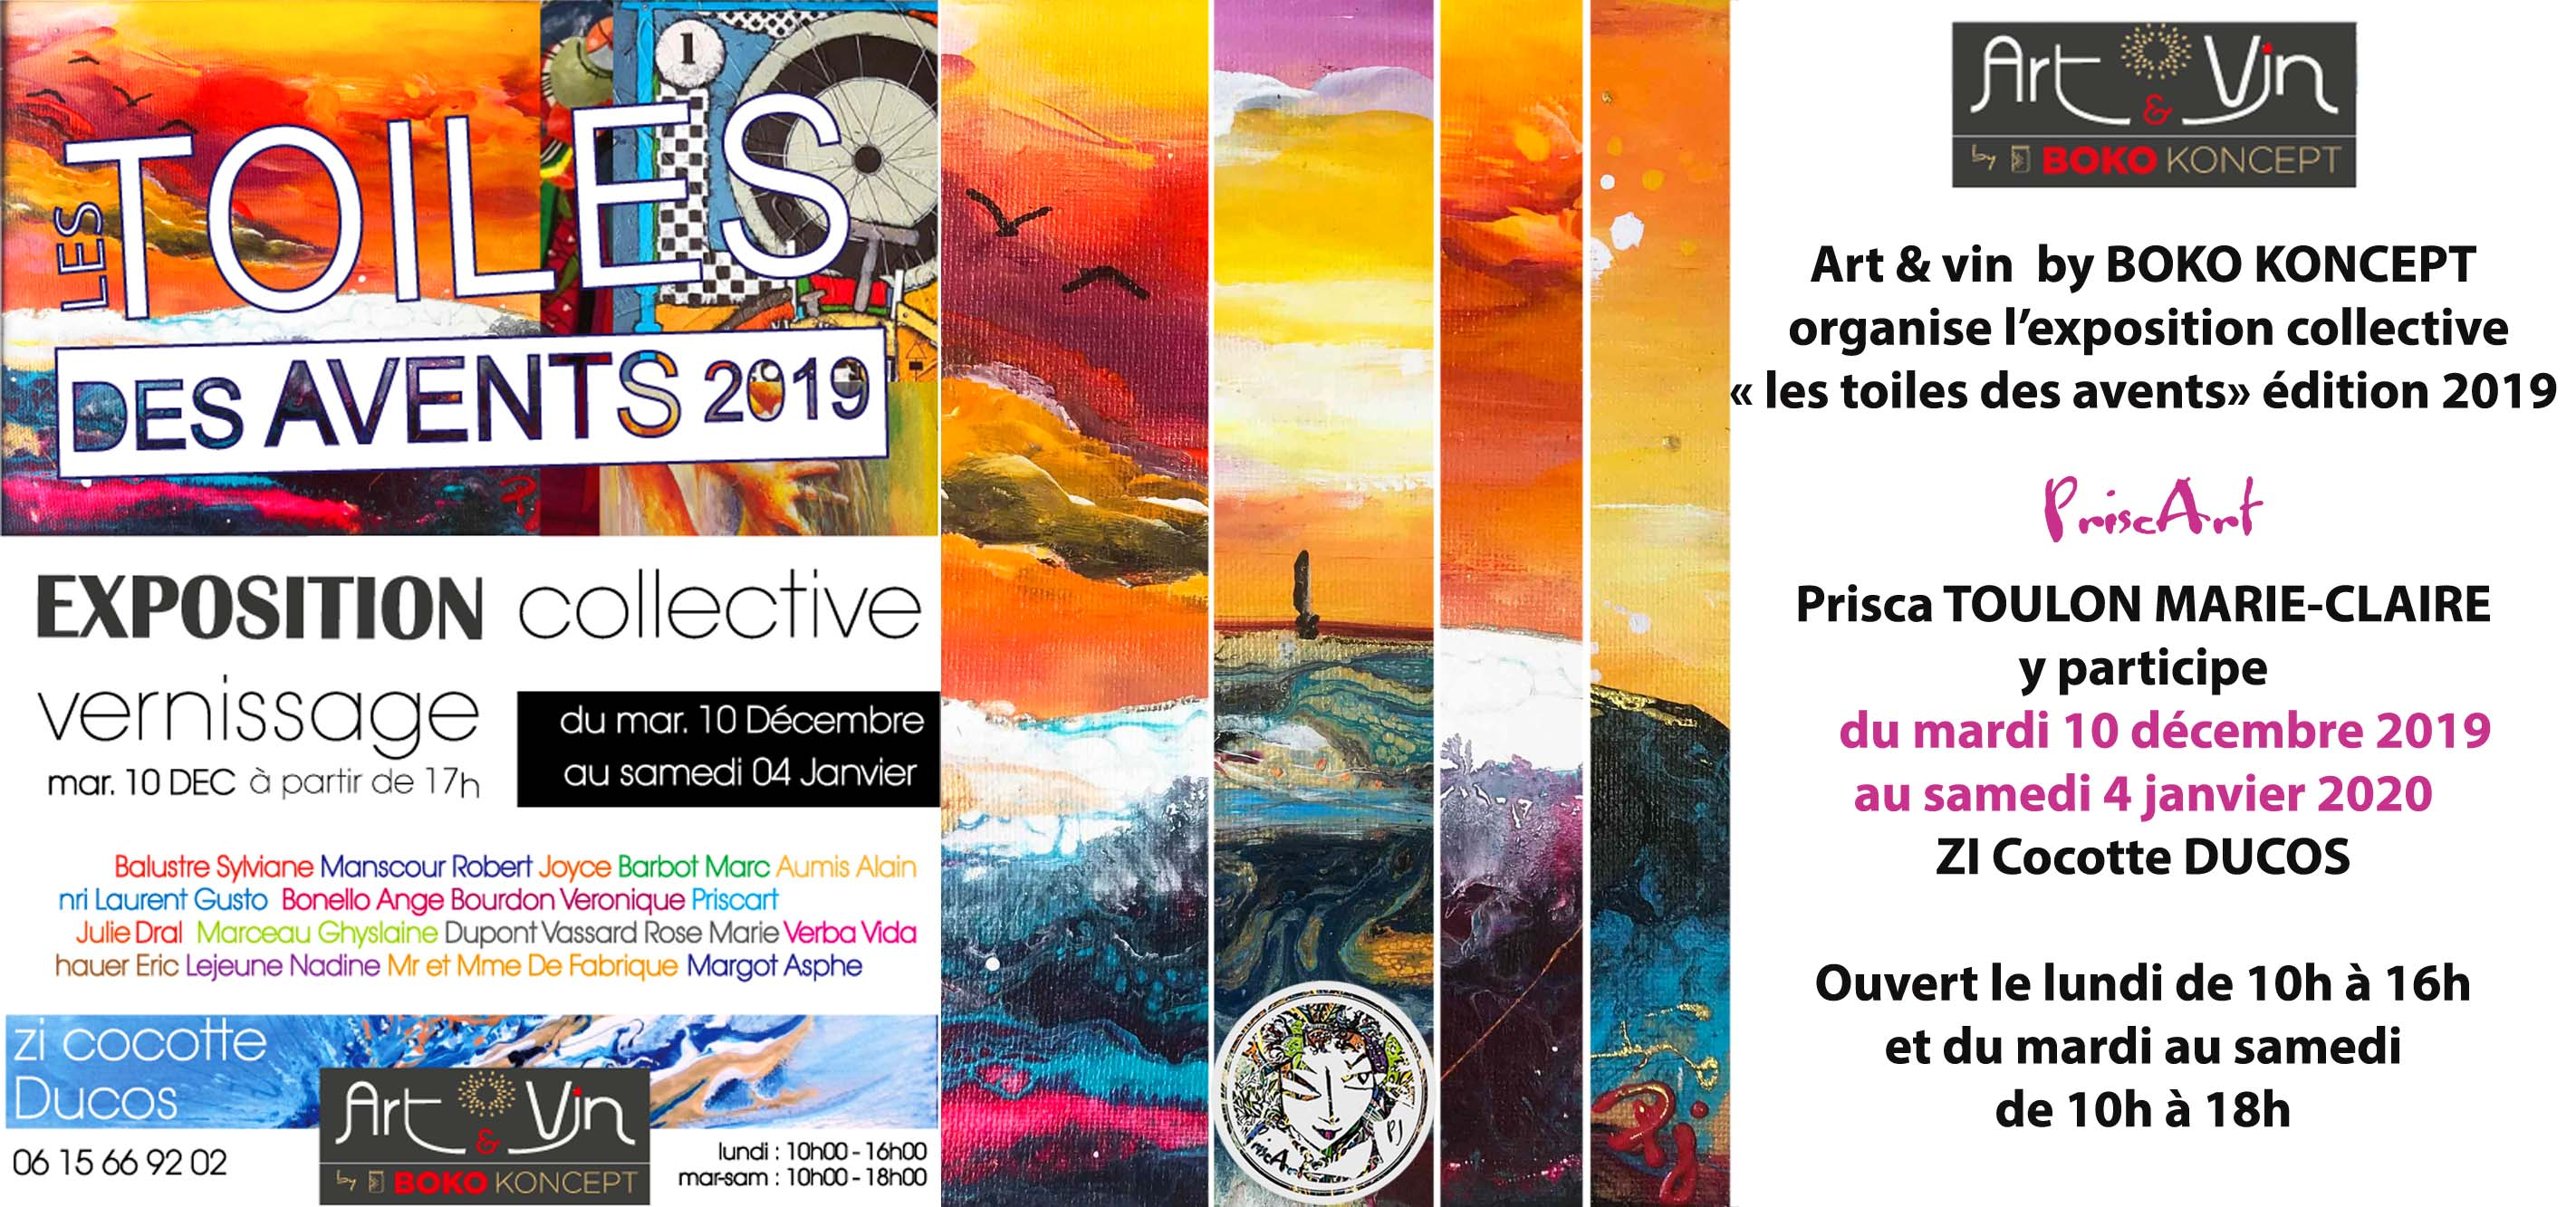 Expo vin art Boko  toile des avents